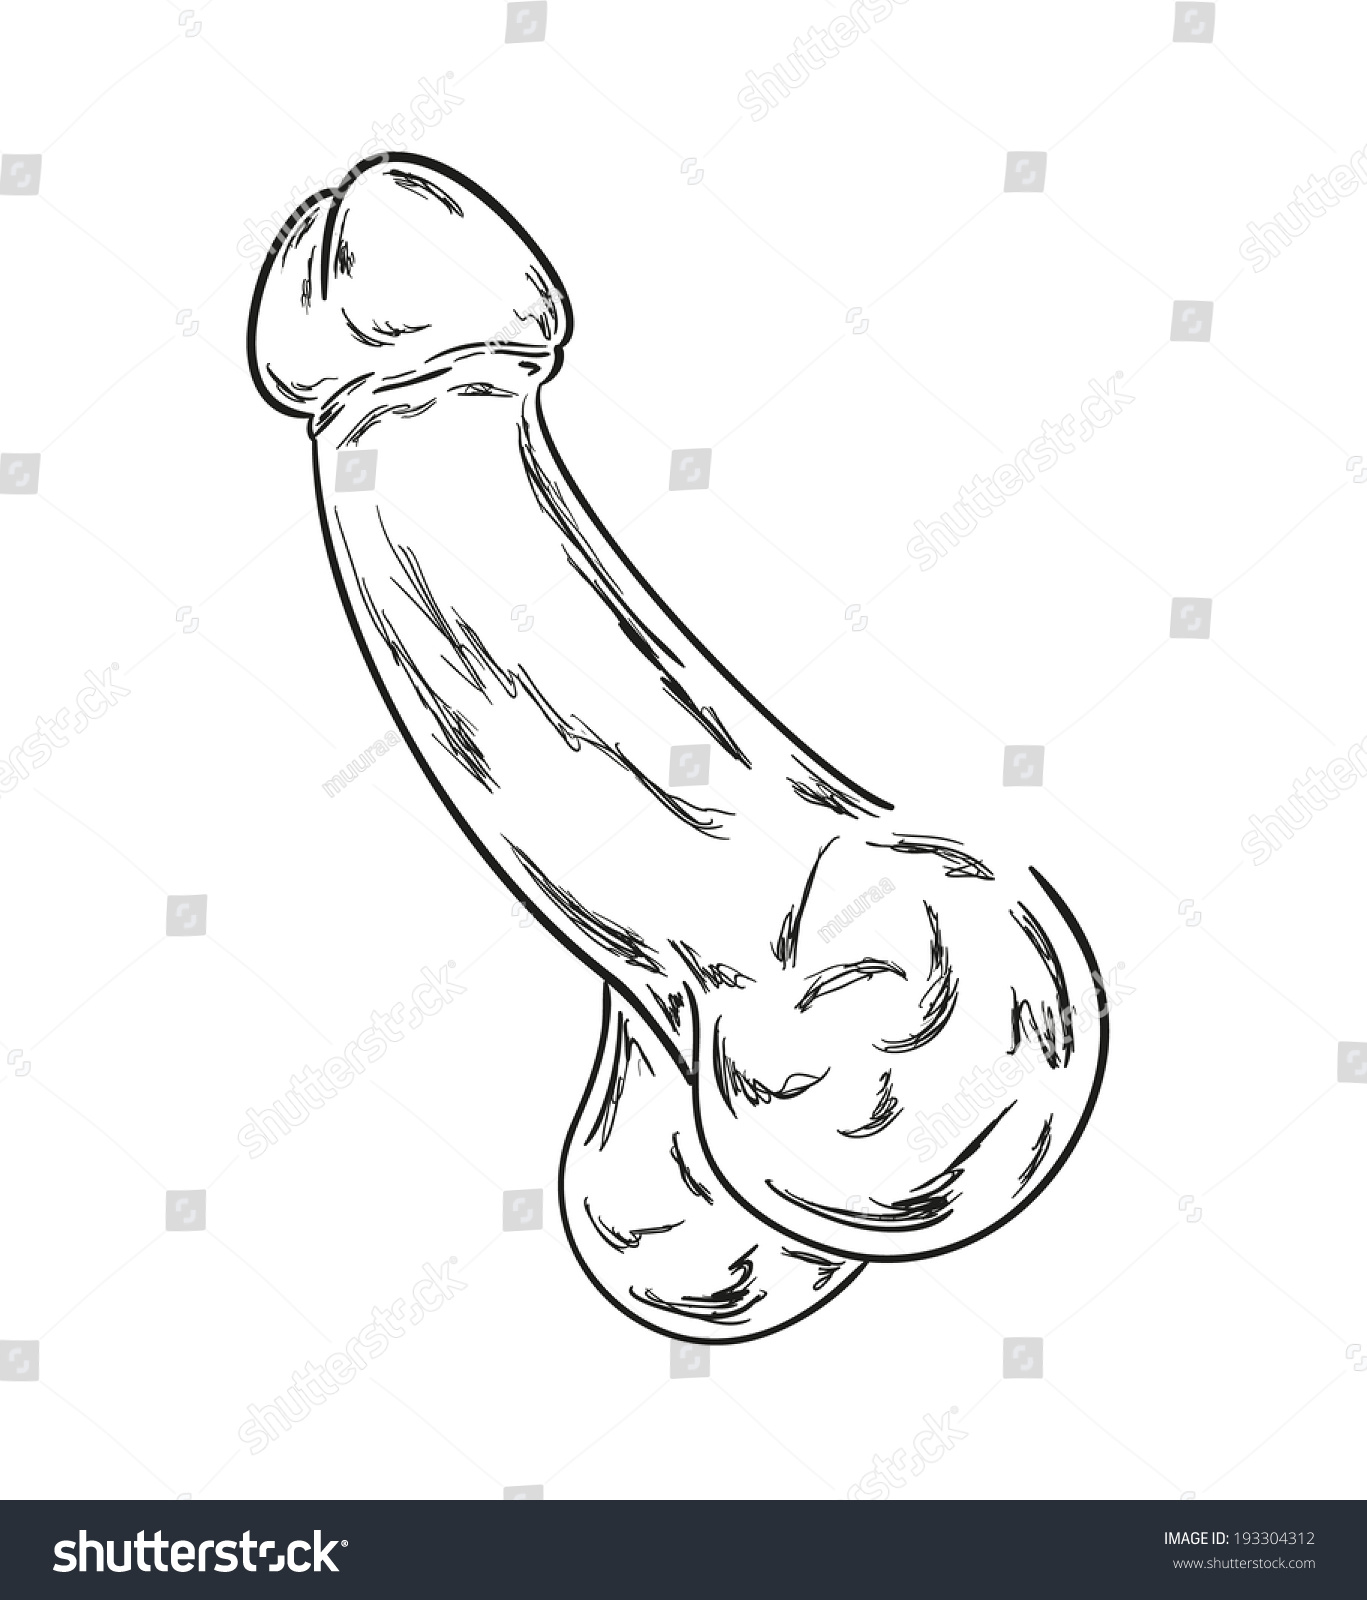 Drawing Of A Penis 87